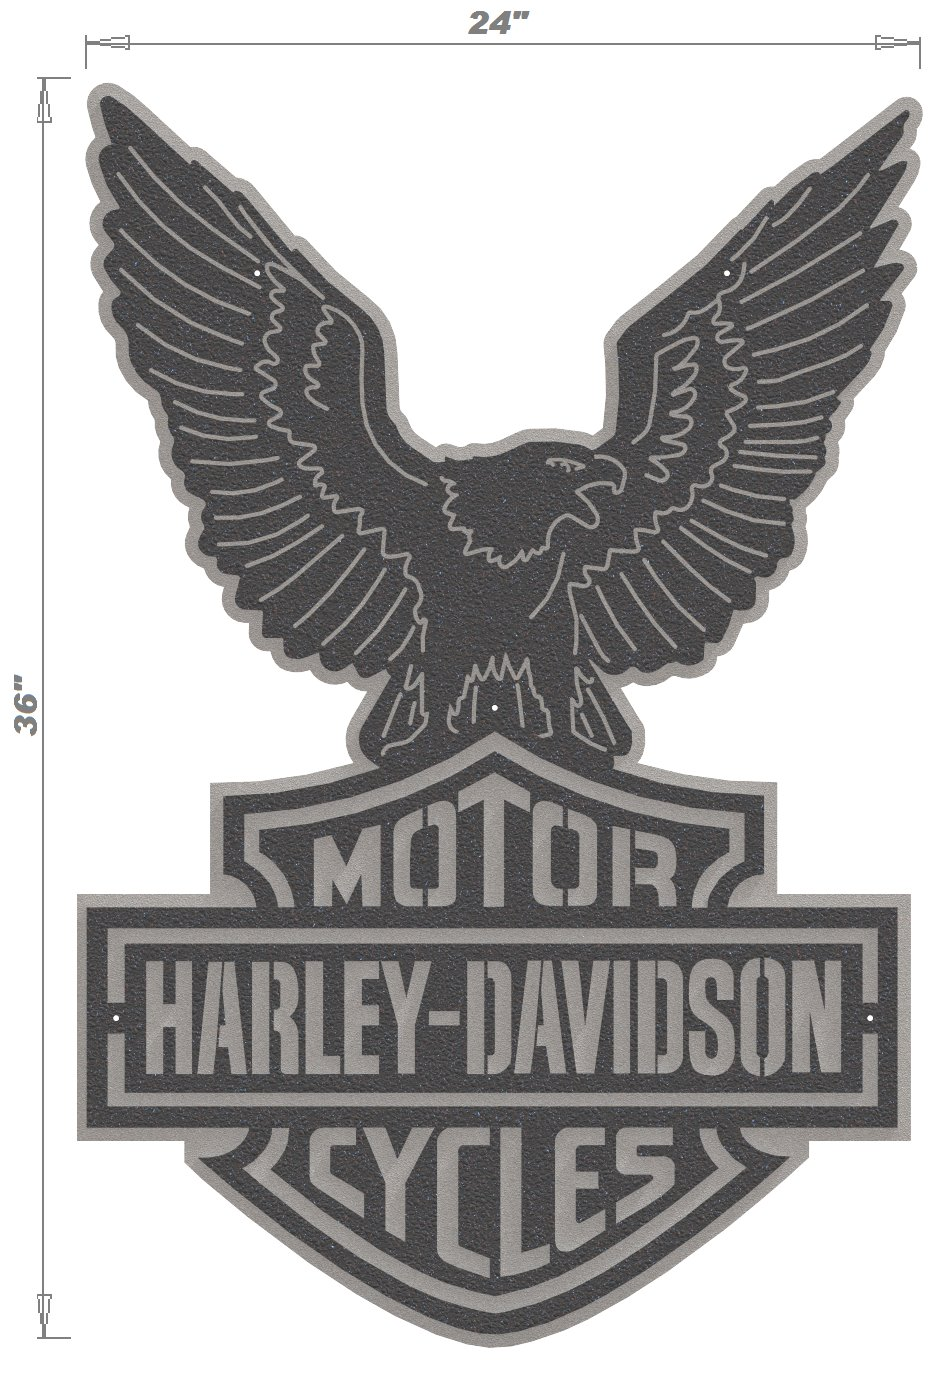 Harley davidson logo eagle 2 piece steel wall decoration 2